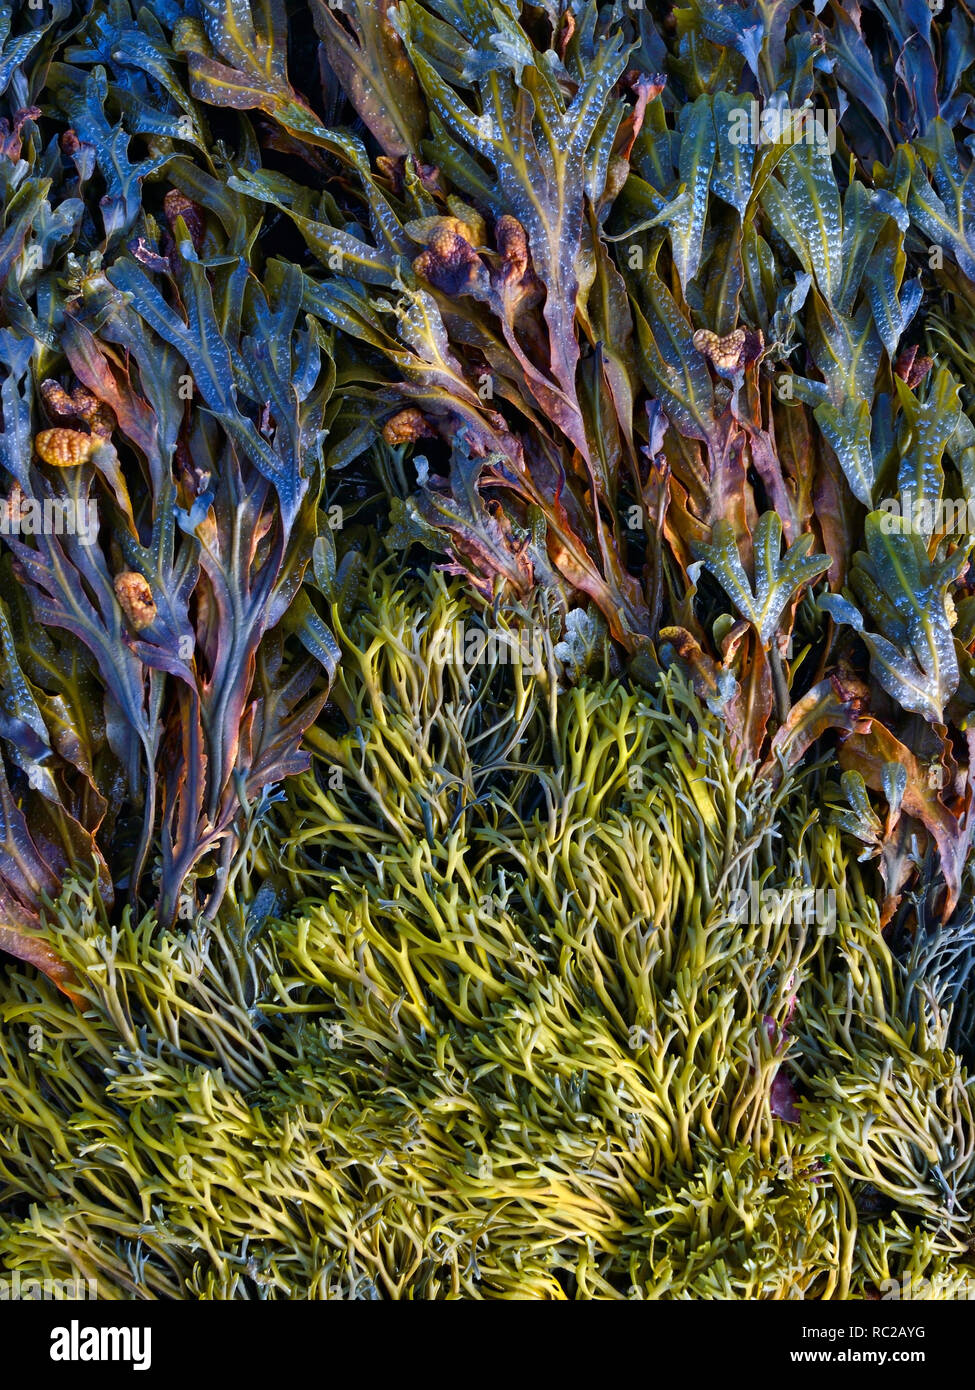 A close up of seaweed on Carraroe Beach, Galway, Ireland - Stock Image